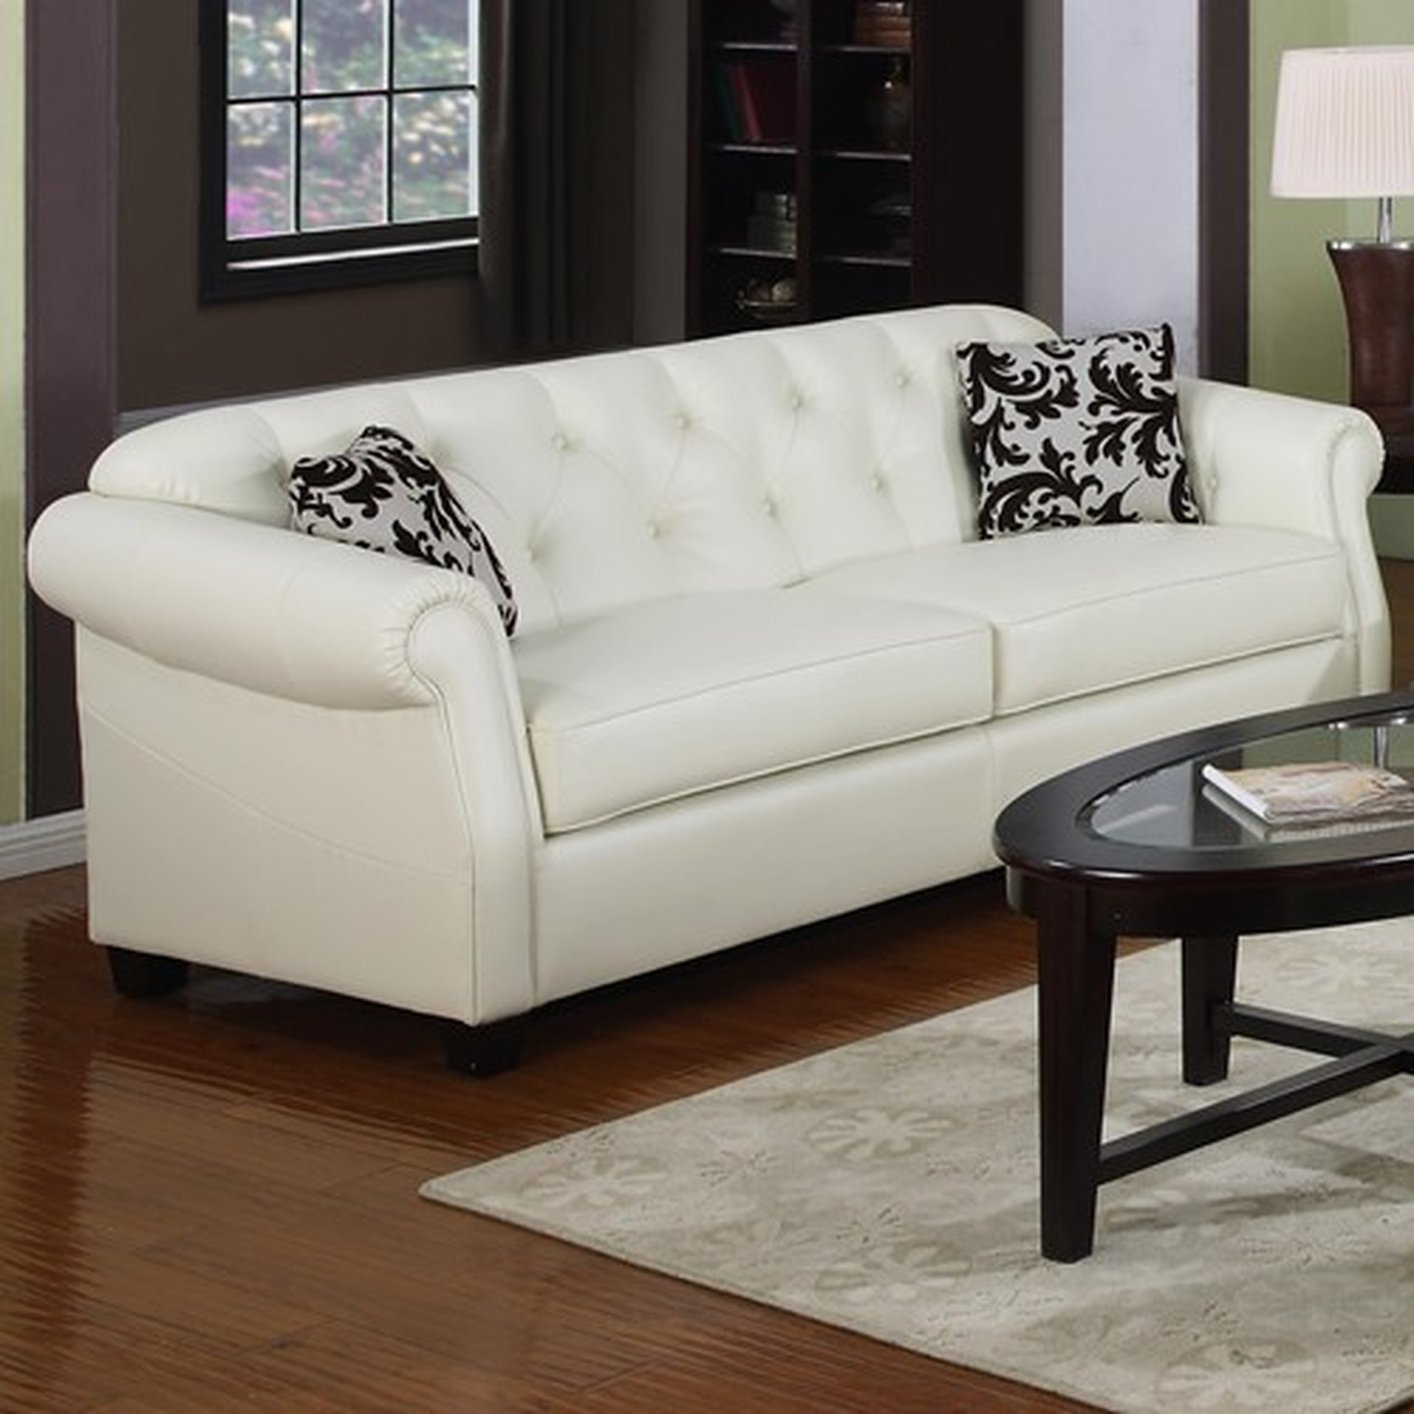 Beige Leather Sofas Trend Beige Leather Couch 43 For Your